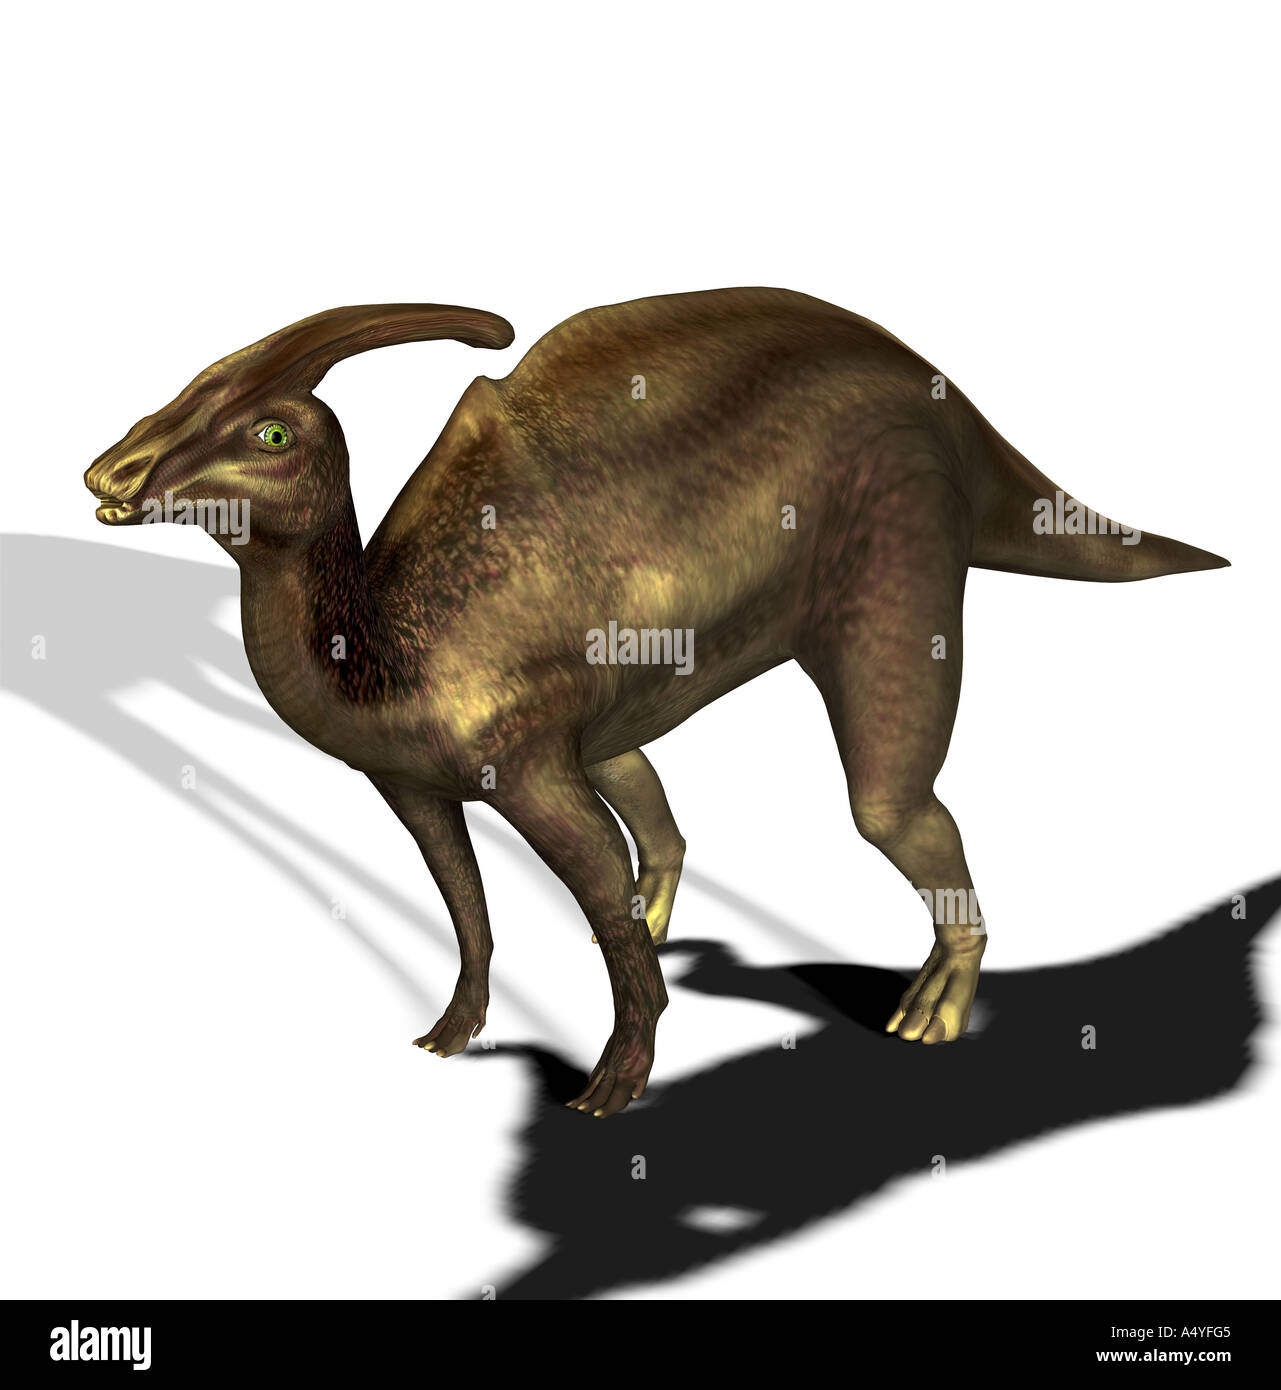 The Parasaurolophus seemed a beside to Saurolophus and in the Cretaceous period. The size amounted to approx. 10m. Stock Photo